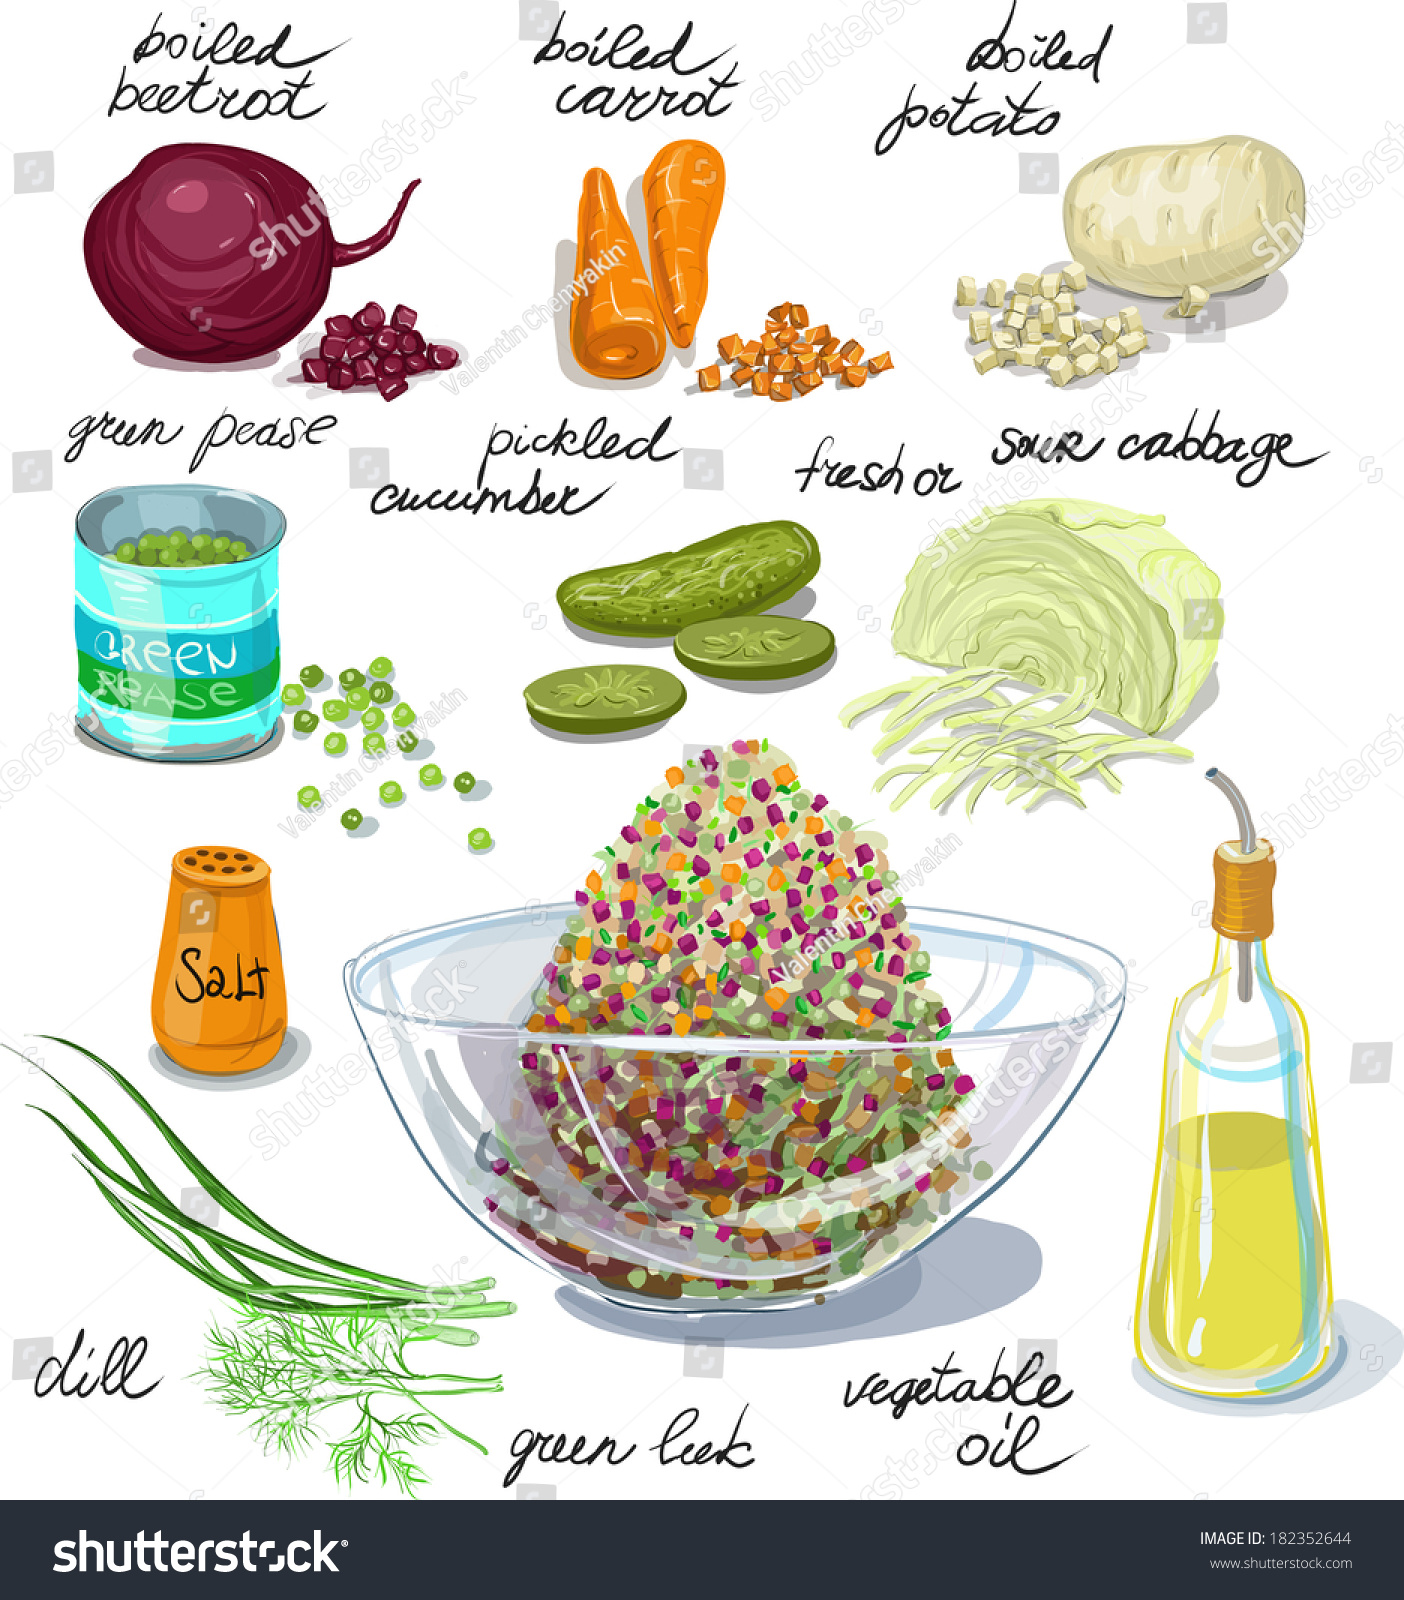 Beetroot Salad Russian Salad Instruction Picture Stock ...